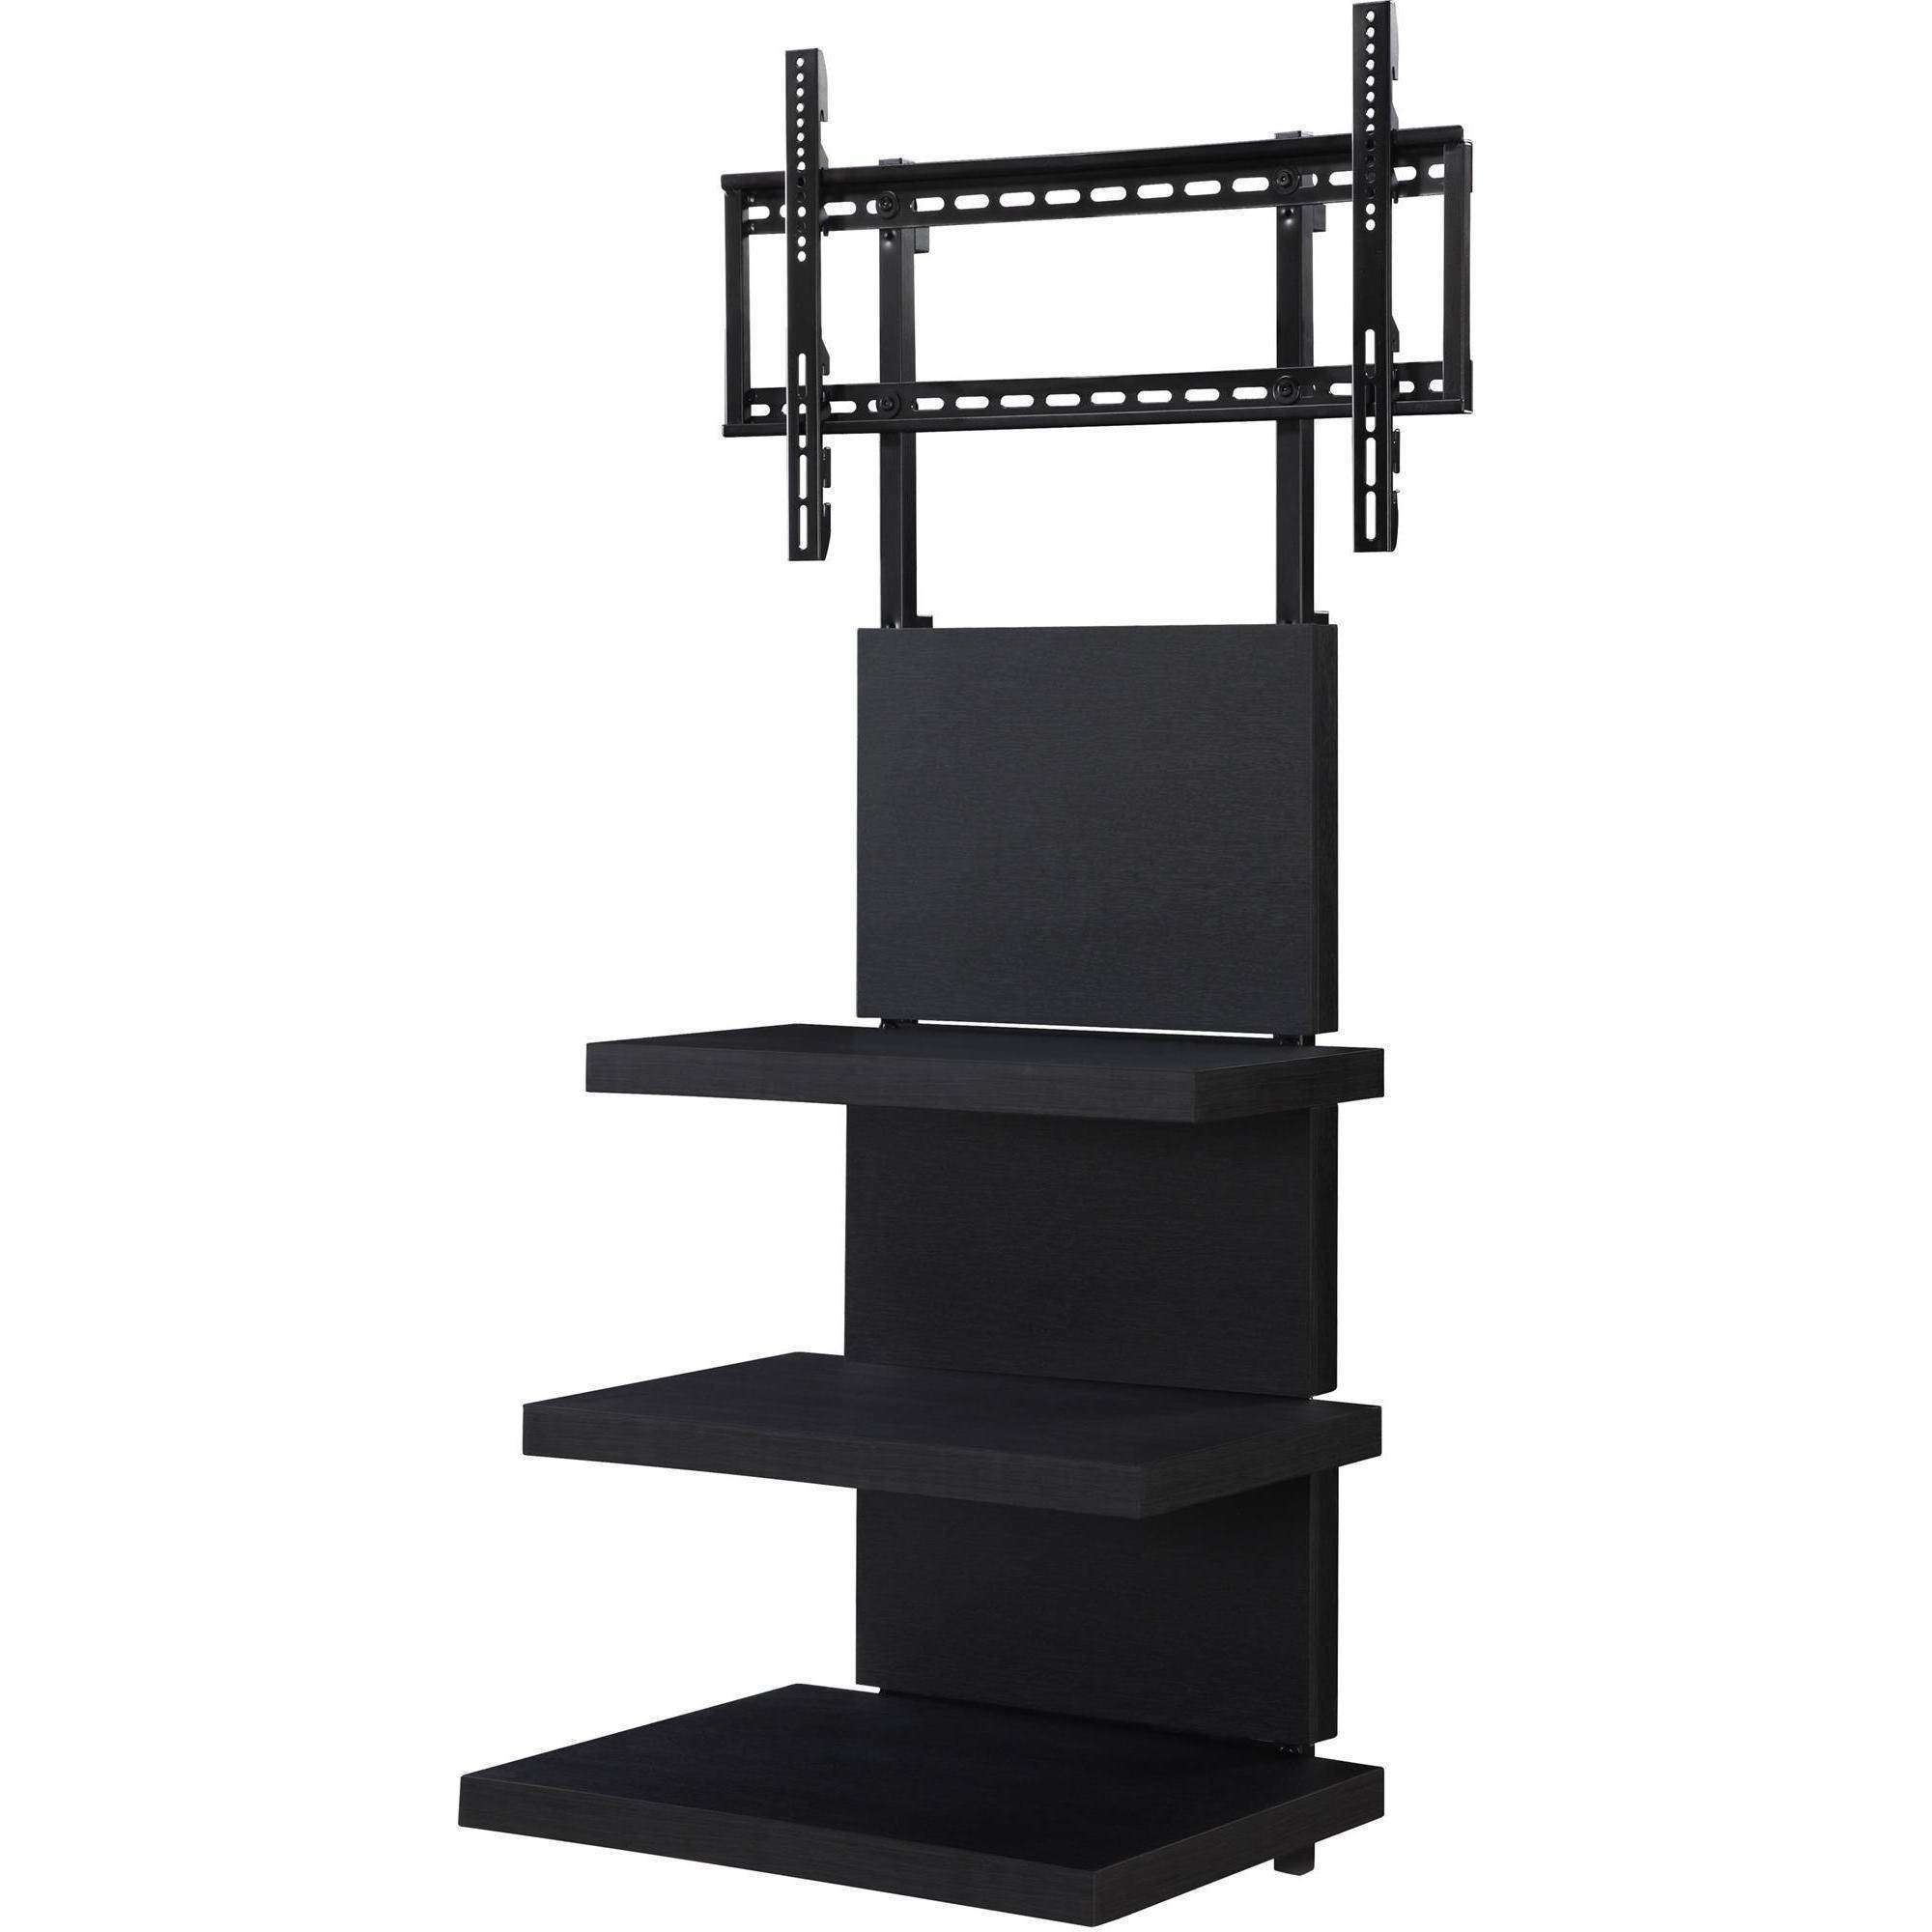 Ameriwood Home Elevation Altramount Tv Stand For Tvs Up To 60 Regarding Elevated Tv Stands (View 6 of 15)